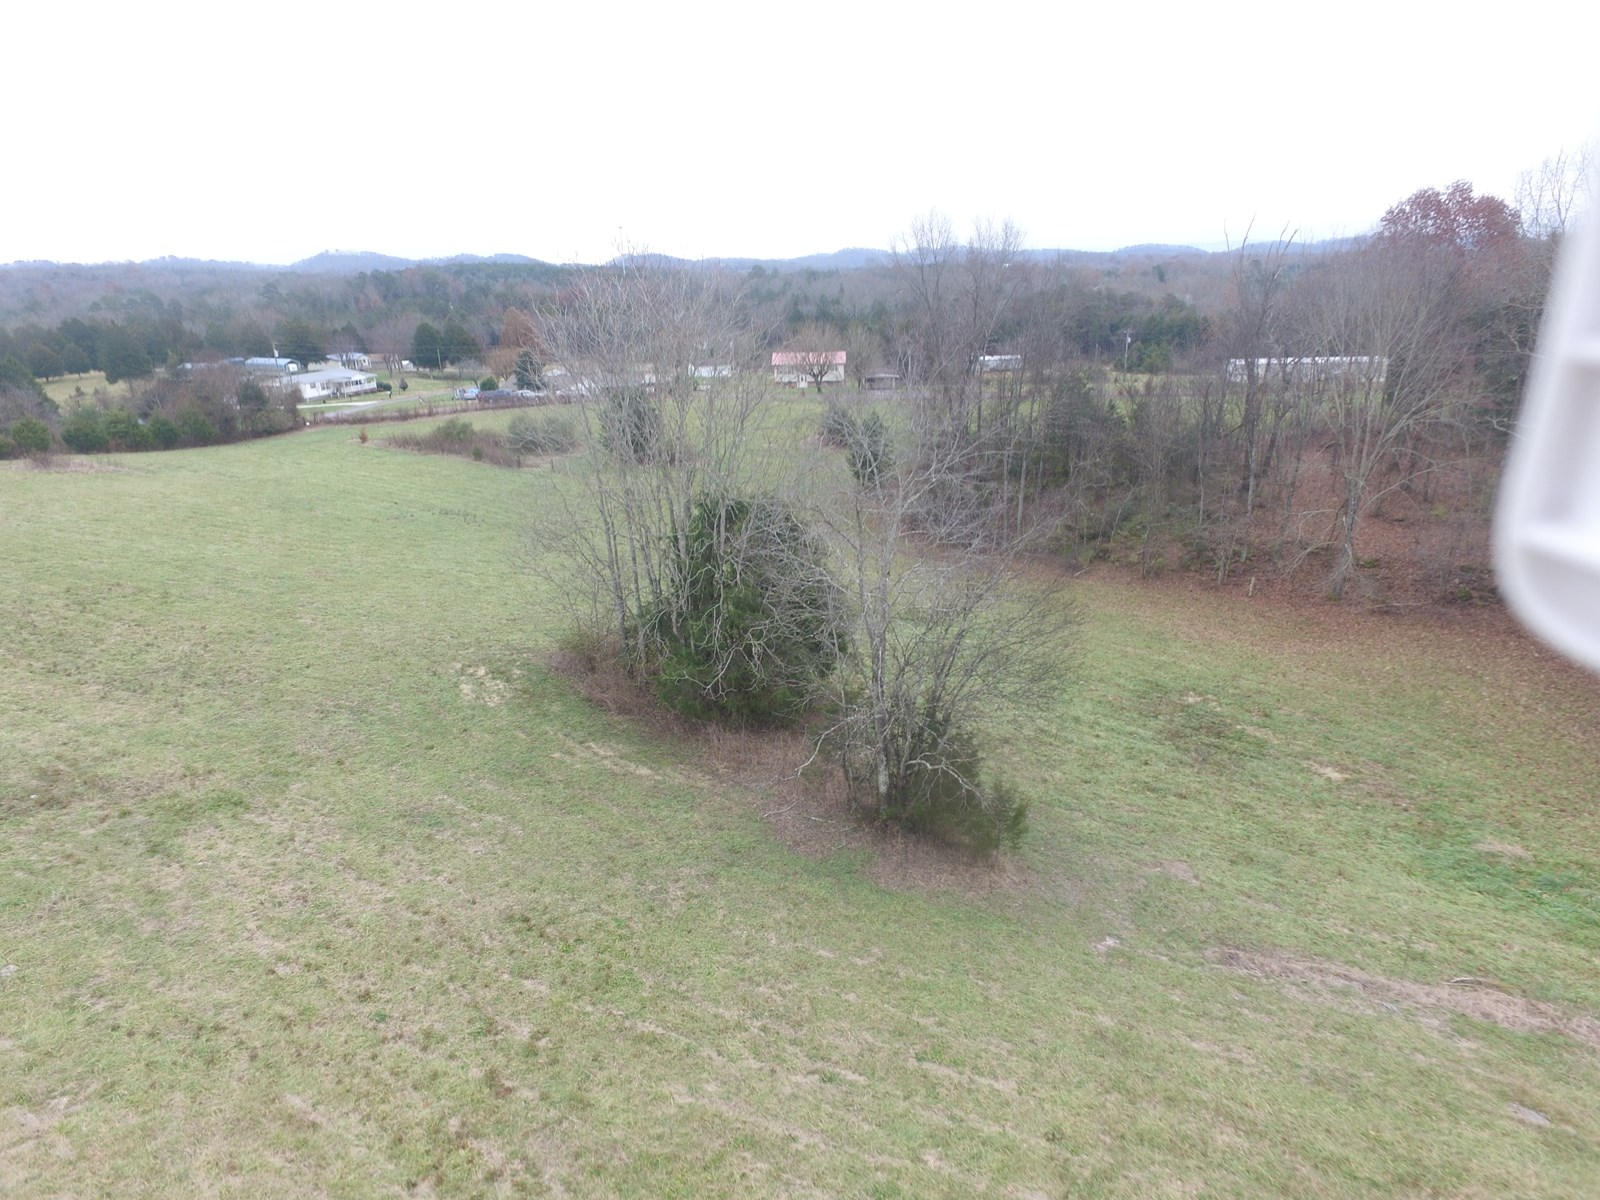 3.22 Acres Unrestricted Land in Talbott, TN For Sale